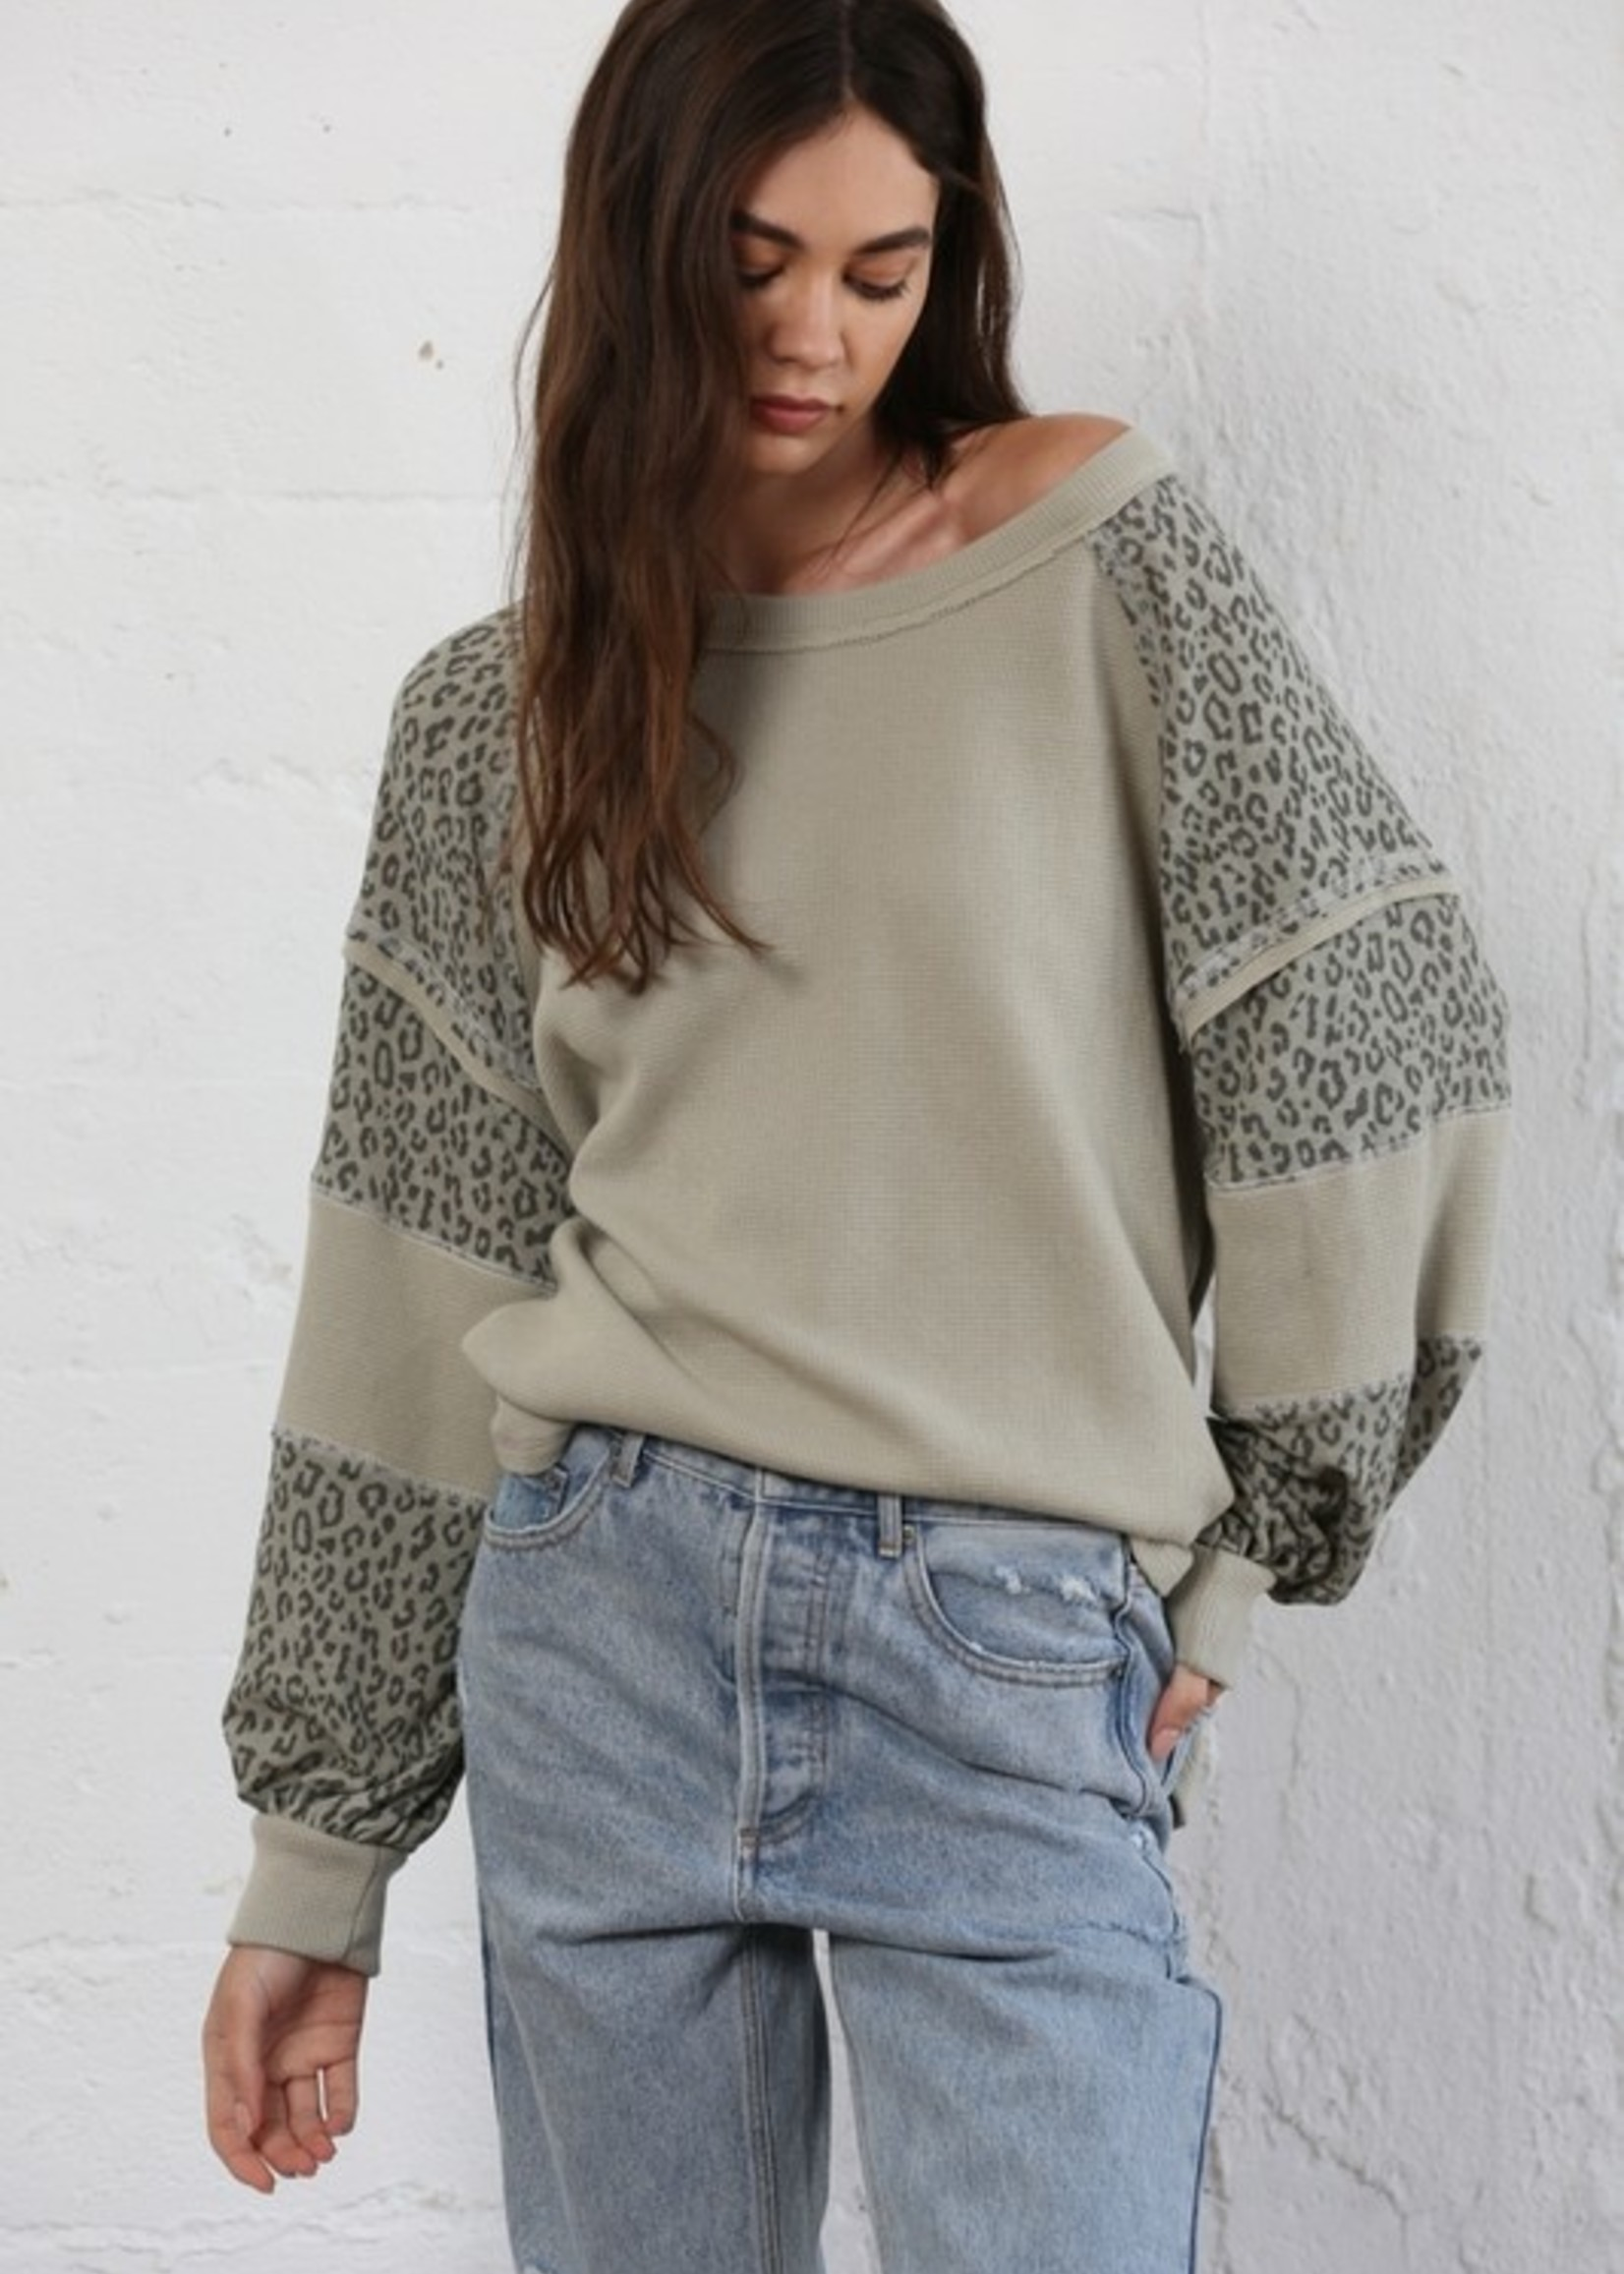 Thermal with Leopard Sleeves - Sage